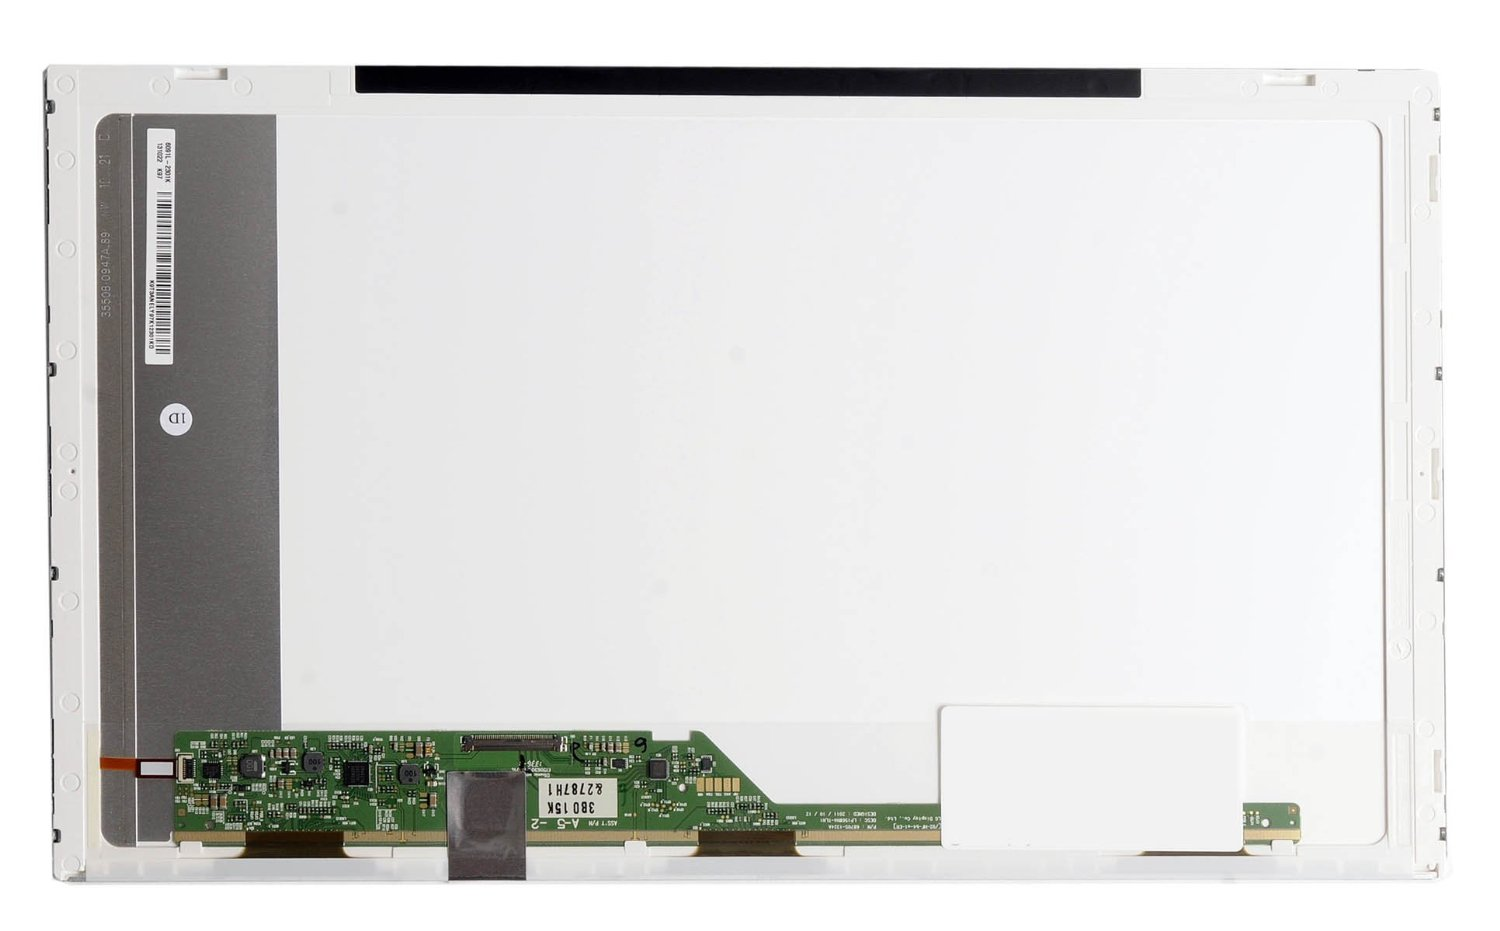 New 15.6 Laptop LED LCD HD WXGA 1366 x 768 for Gateway Models: MS2285, NV5378u, NV53A24U, NV5337u, NV5356u, NV5362u for hp 665334 001 645096 001 640445 001 new 15 6 laptop led lcd screen hd wxga 1366 x 768 resolution